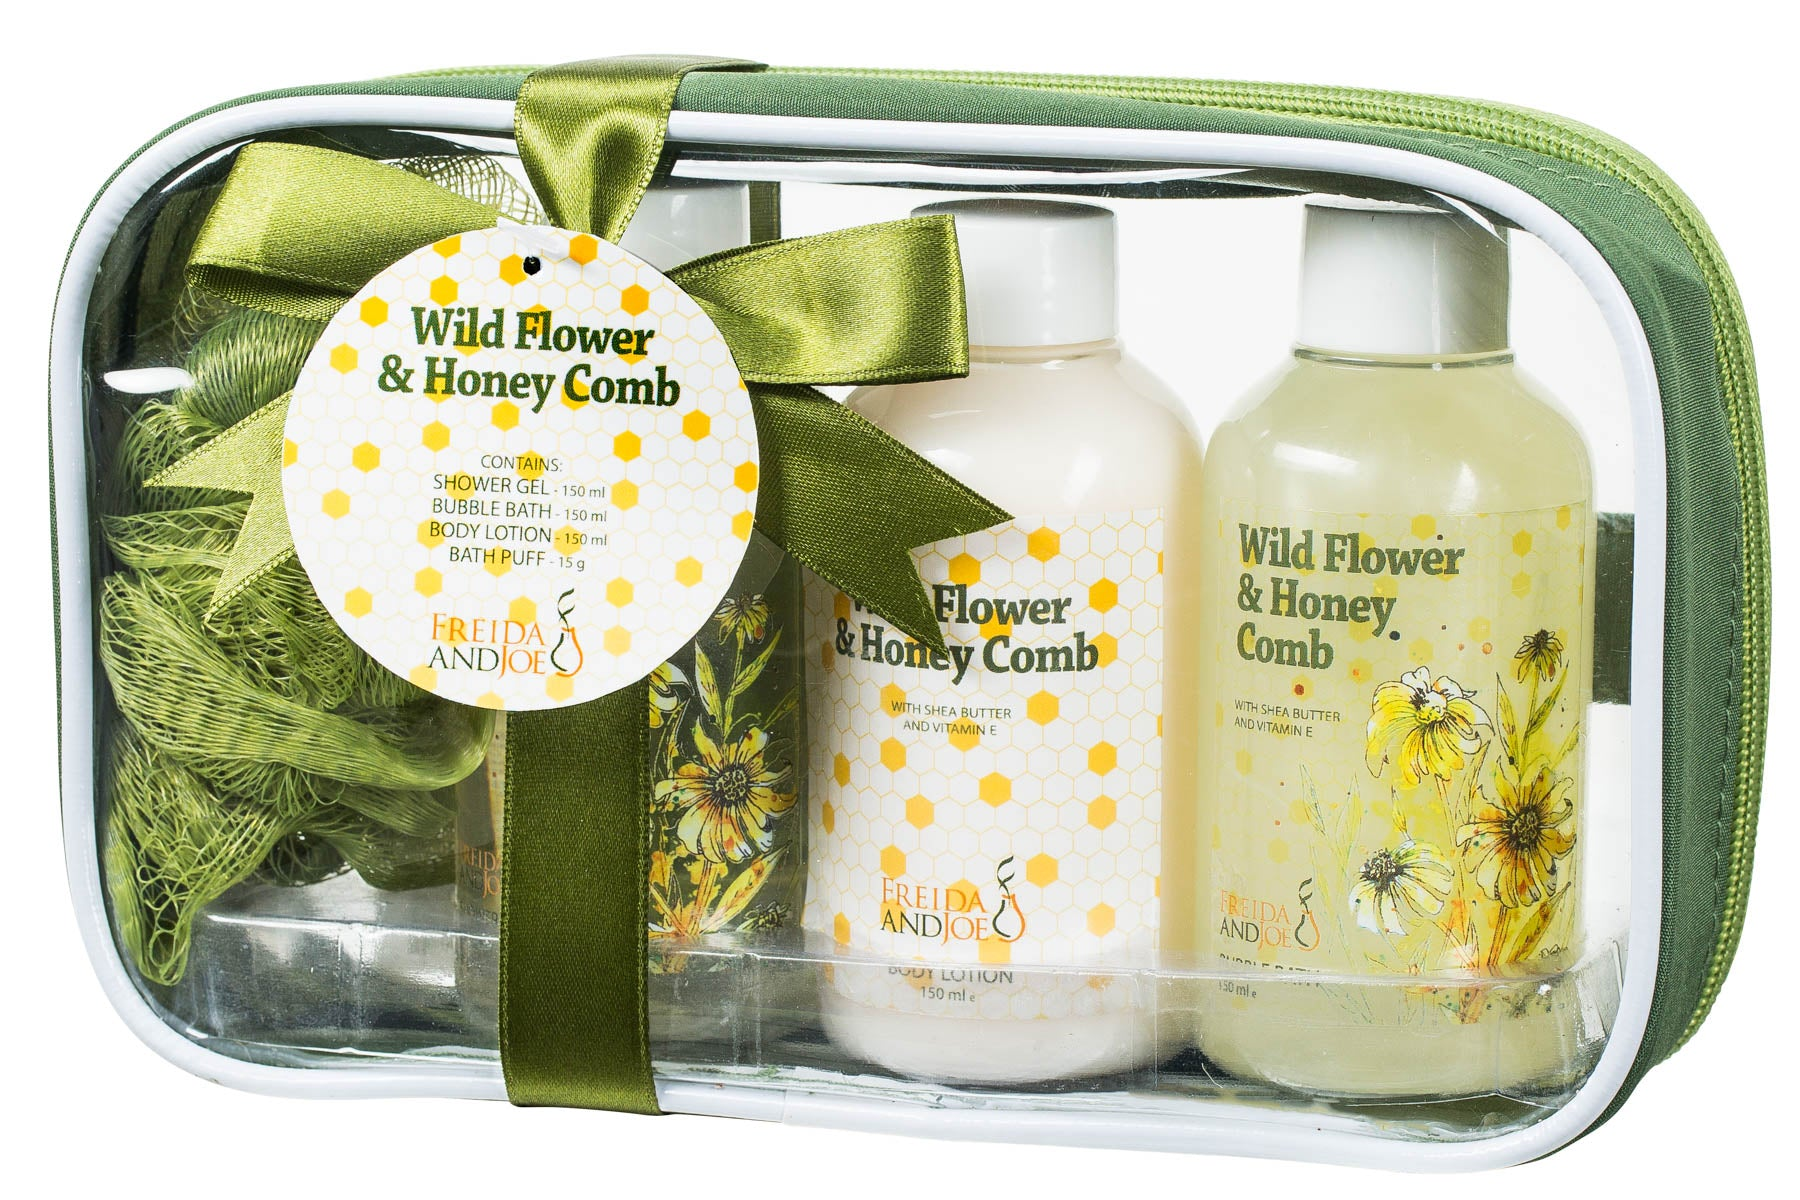 Wild Flower and Honey Comb Spa Gift Set: Shower Gel, Bubble Bath, Body Lotion, & Puff